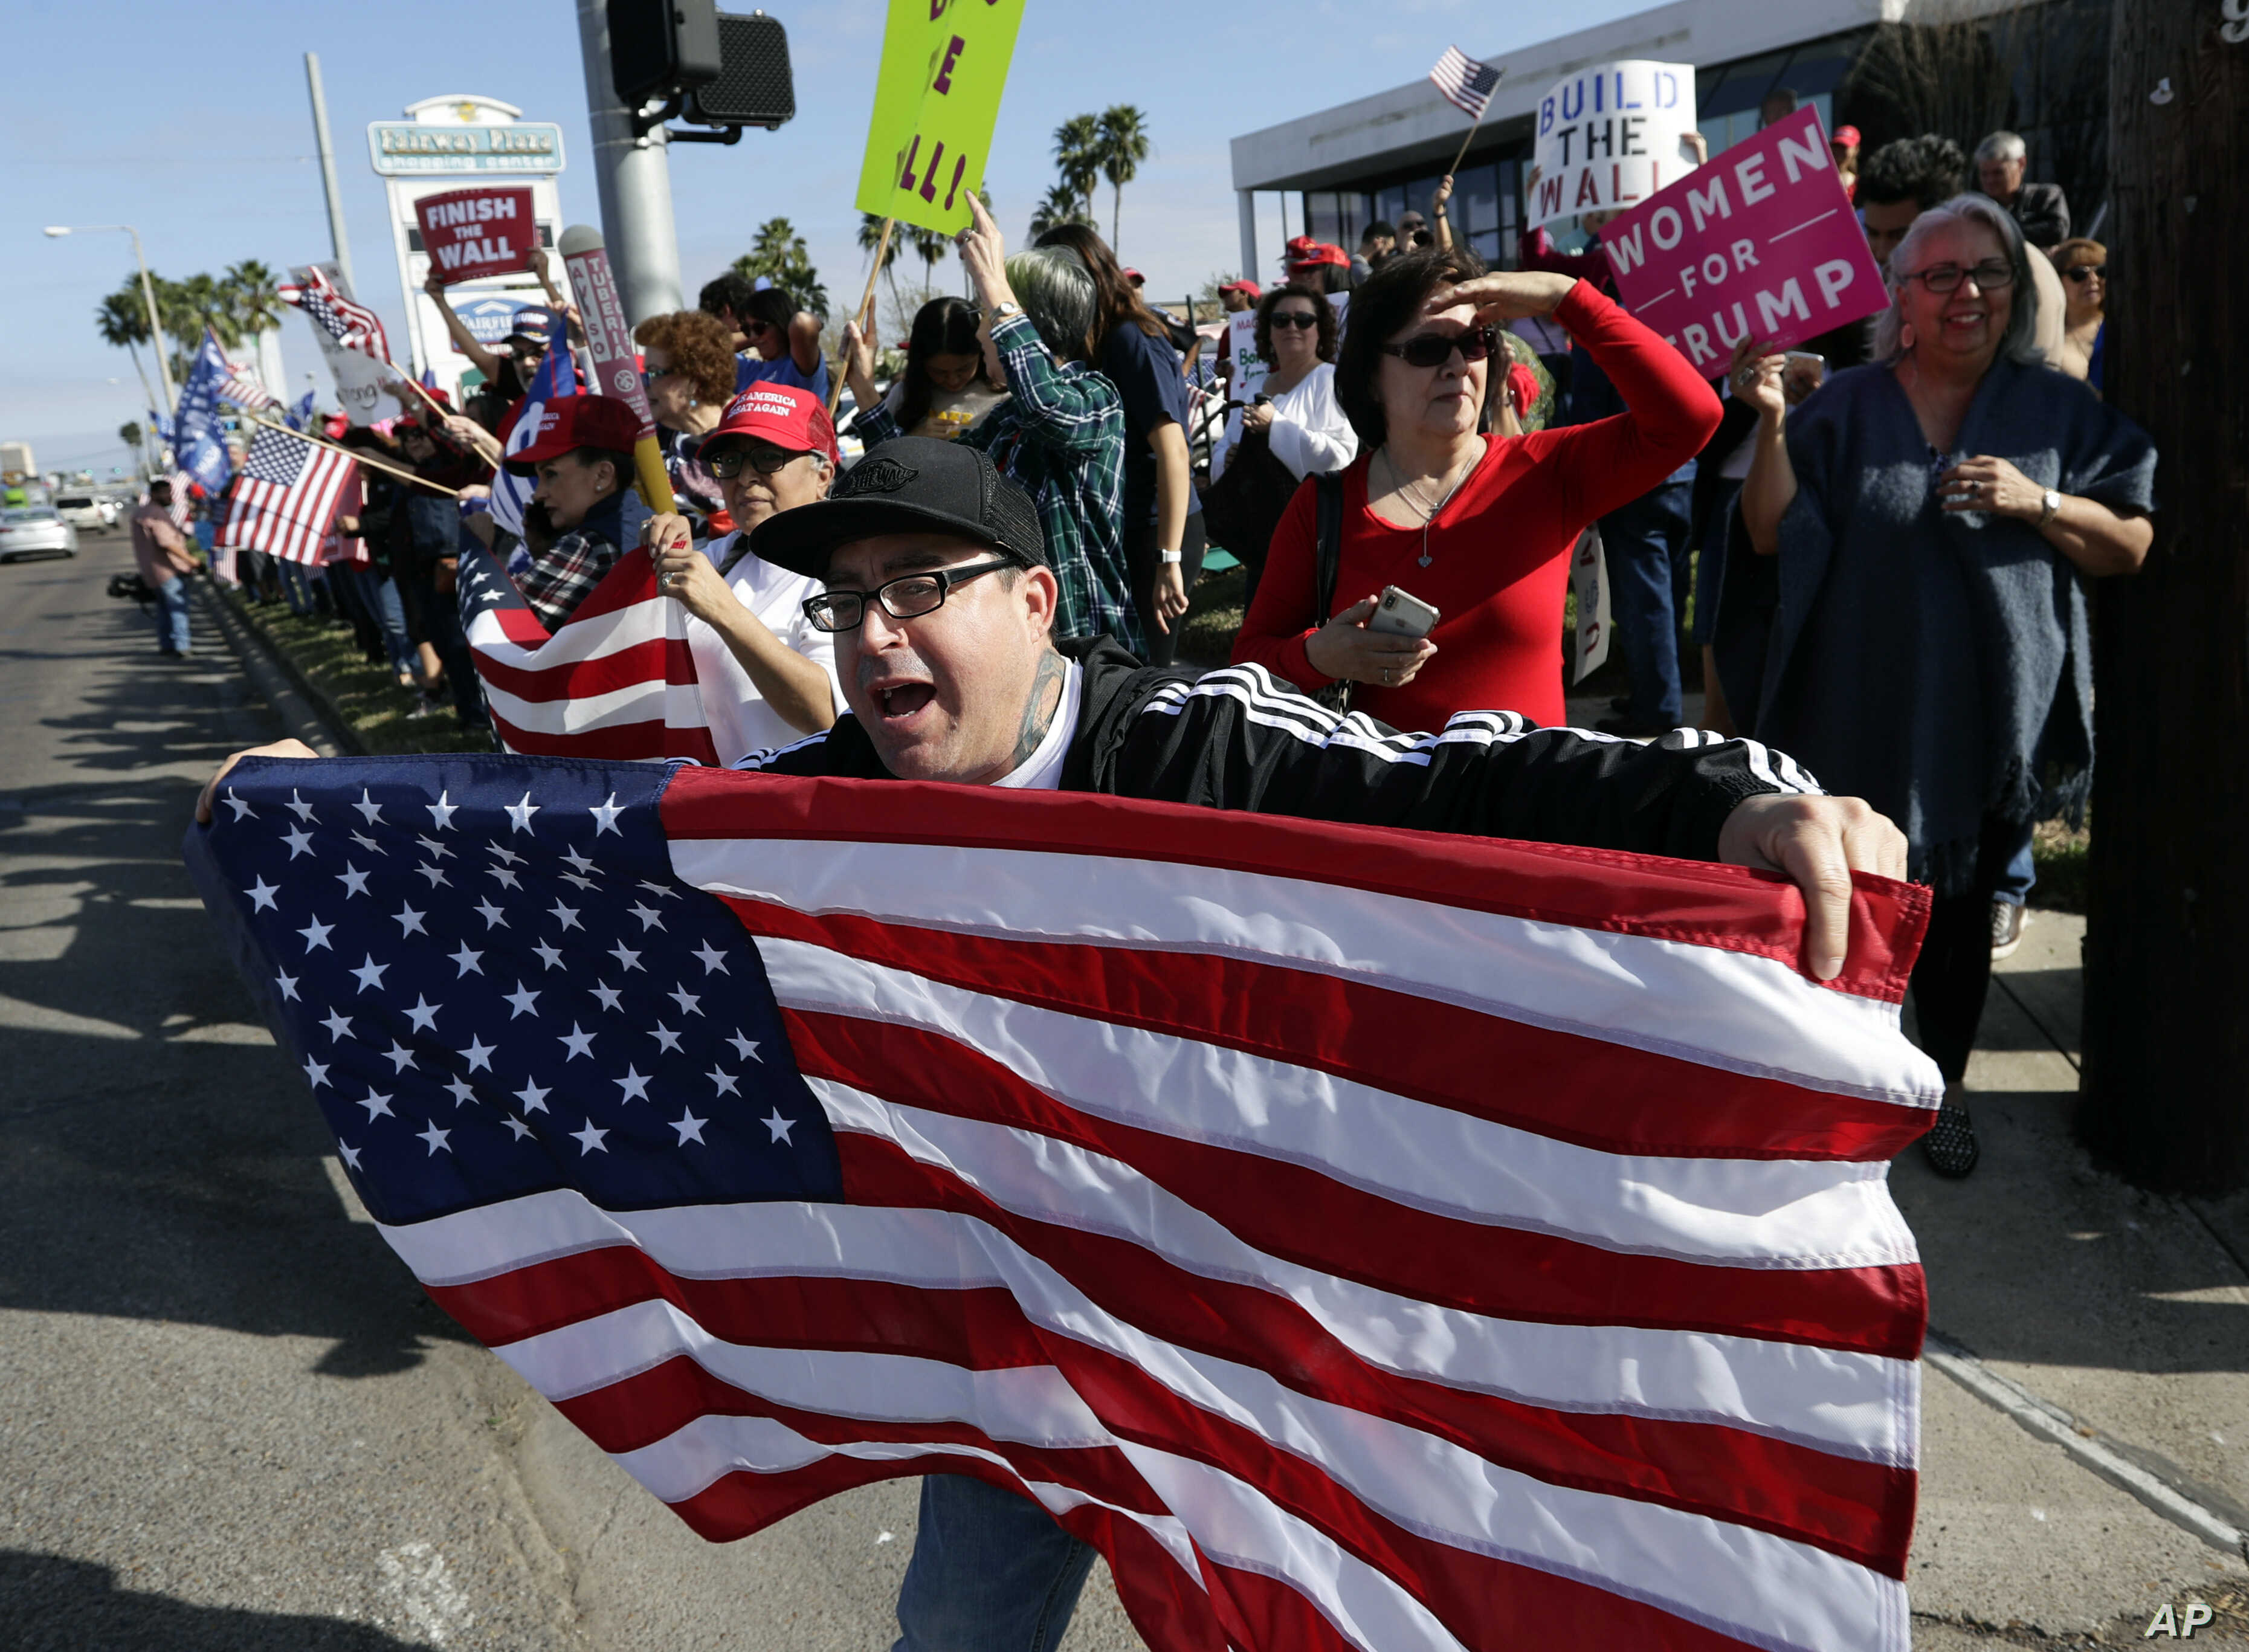 Supporters of President Donald Trump gather outside the McAllen International Airport for Trump's visit to the southern border, Jan. 10, 2019, in McAllen, Texas.